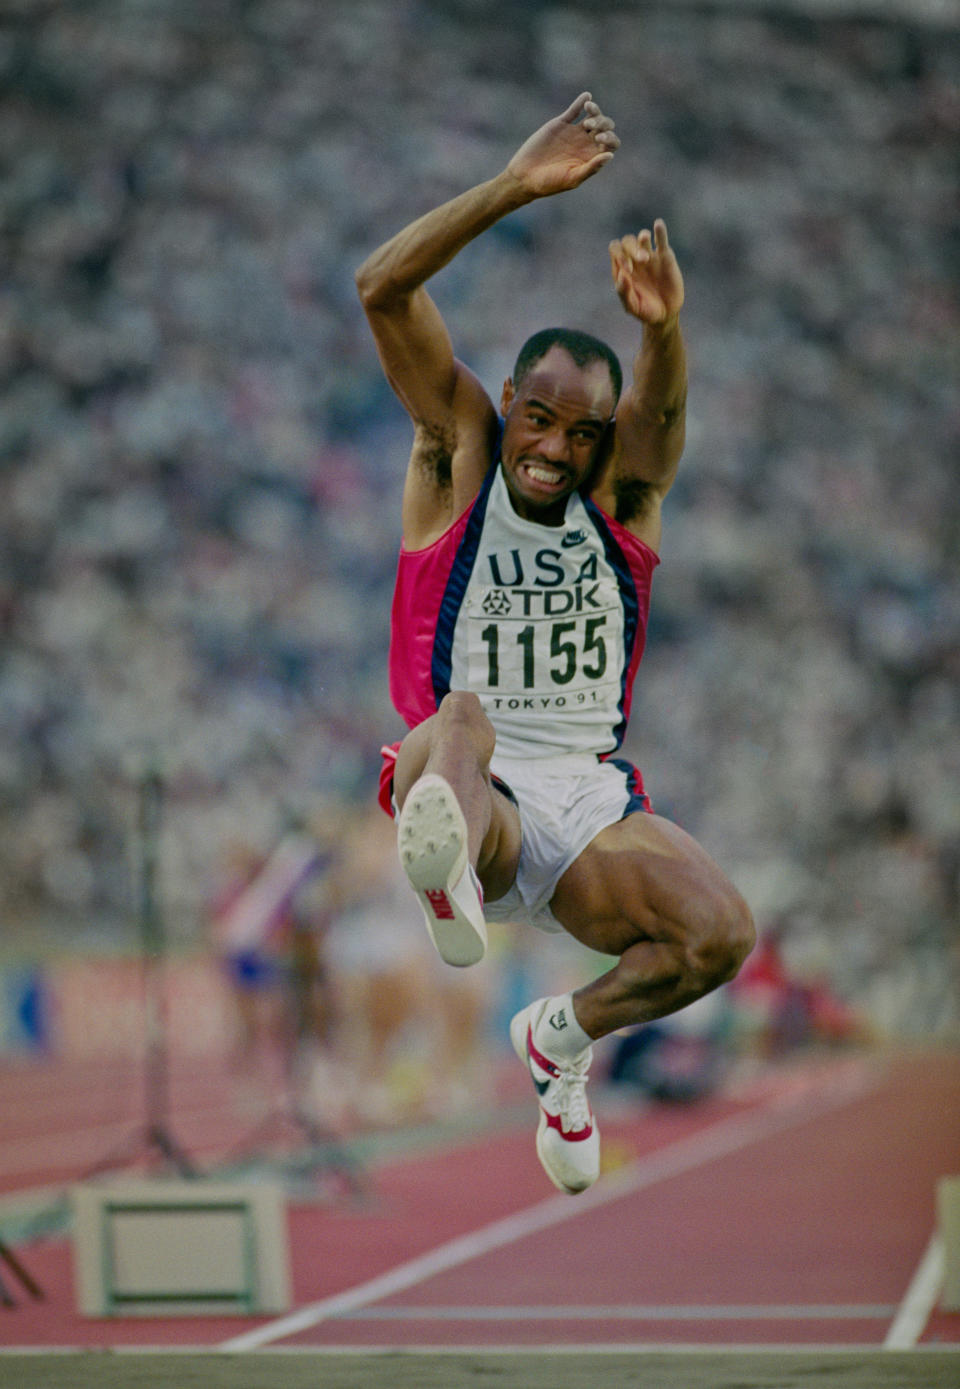 Mike Powell of the United State during the Long Jump event at the IAAF World Athletic Championships on 30th August 1991 at the Olympic Stadium in Tokyo, Japan. Powell broke Bob Beamon's 23-year-old long jump world record by 5 cm (2 inches), leaping 8.95 m (29 ft 4 in). (Photo by Mike Powell/Getty Images)